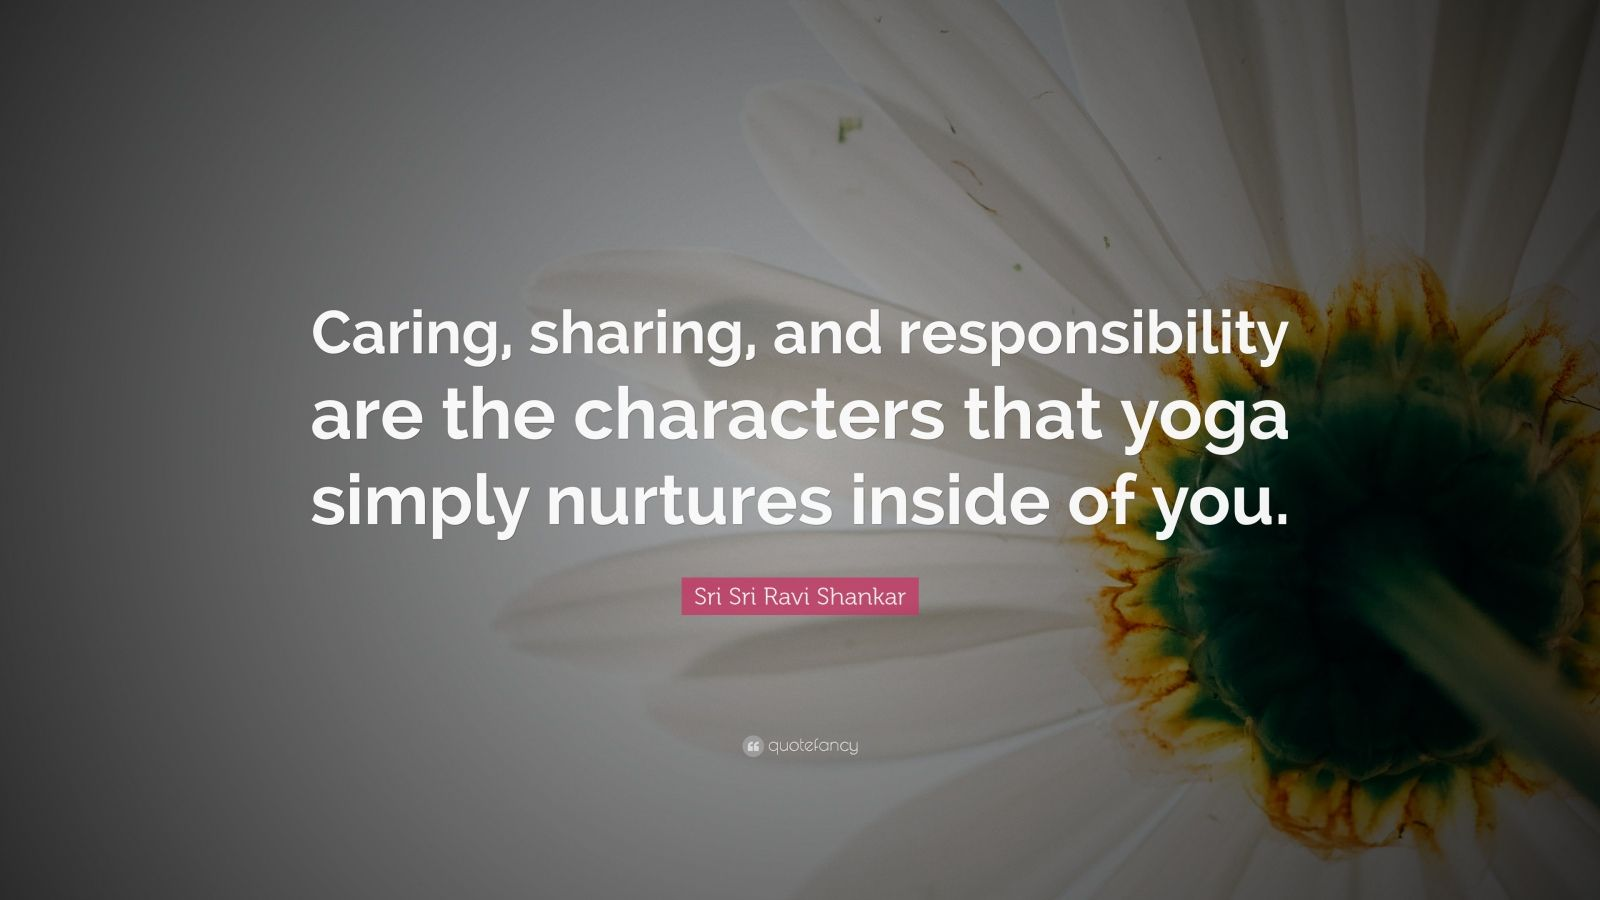 """Sri Sri Ravi Shankar Quote: """"Caring, sharing, and responsibility are the characters that yoga simply nurtures inside of you."""""""